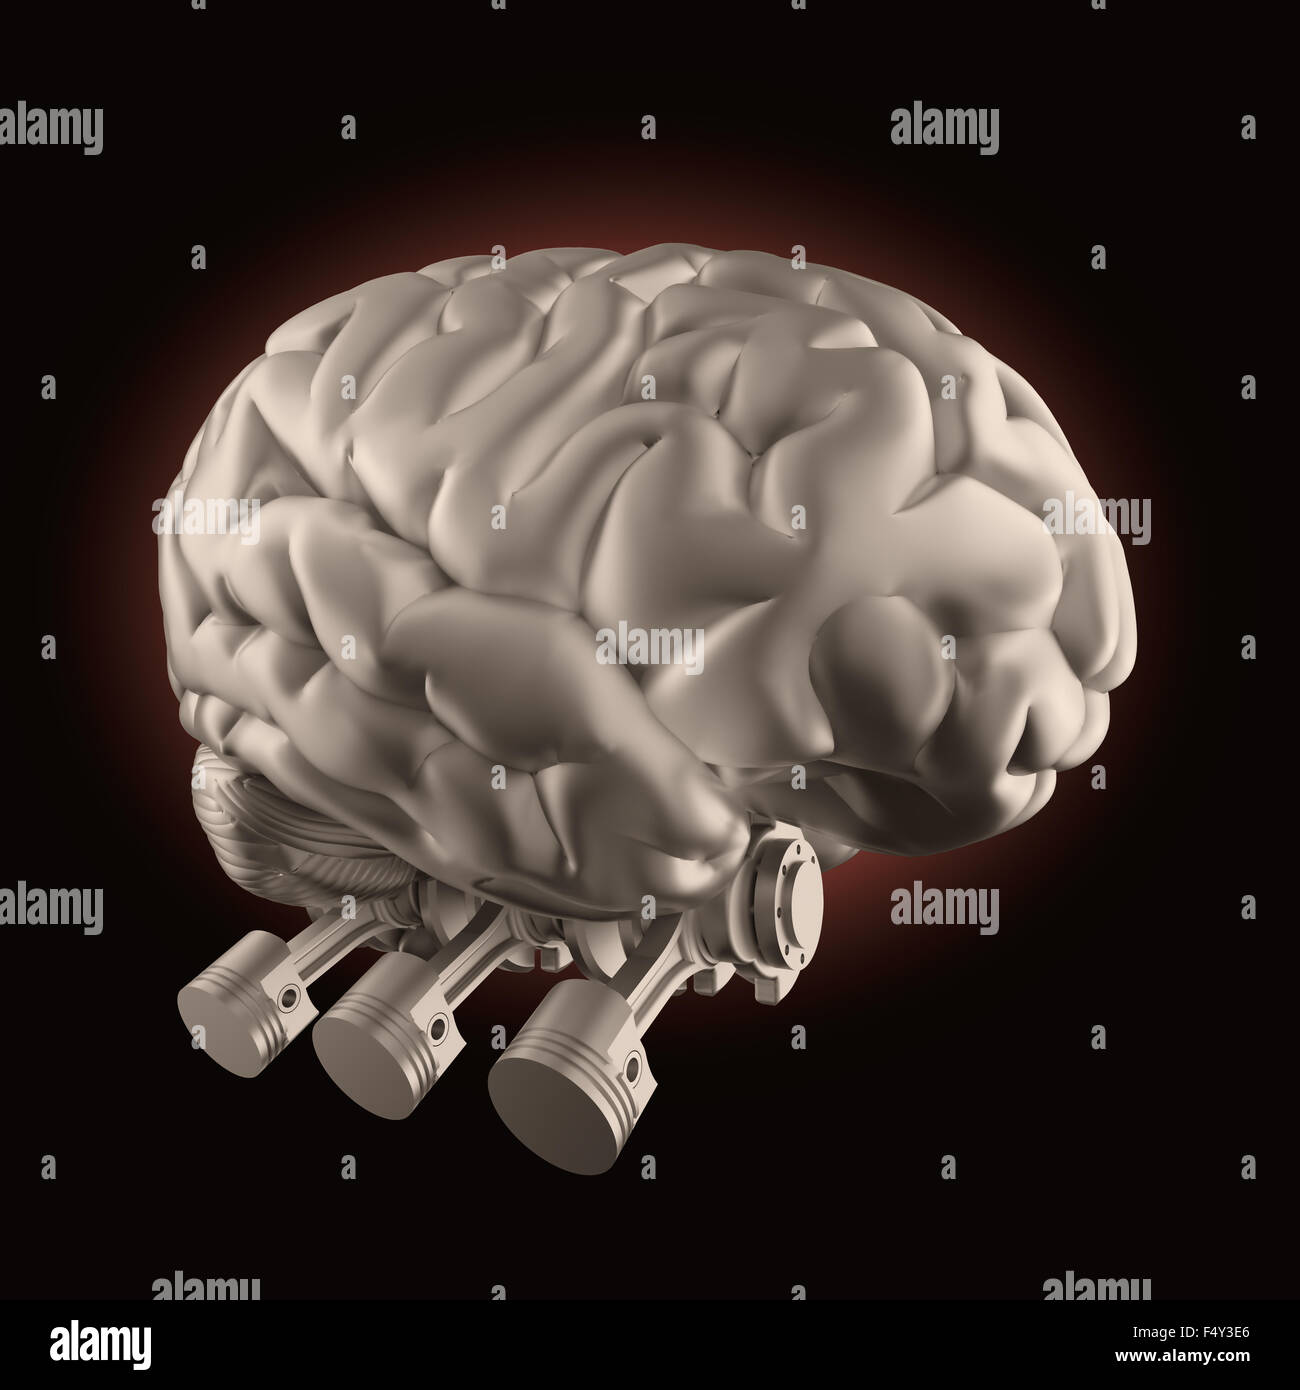 Brain with combustion engine valves - brain stimulation and power concept - Stock Image